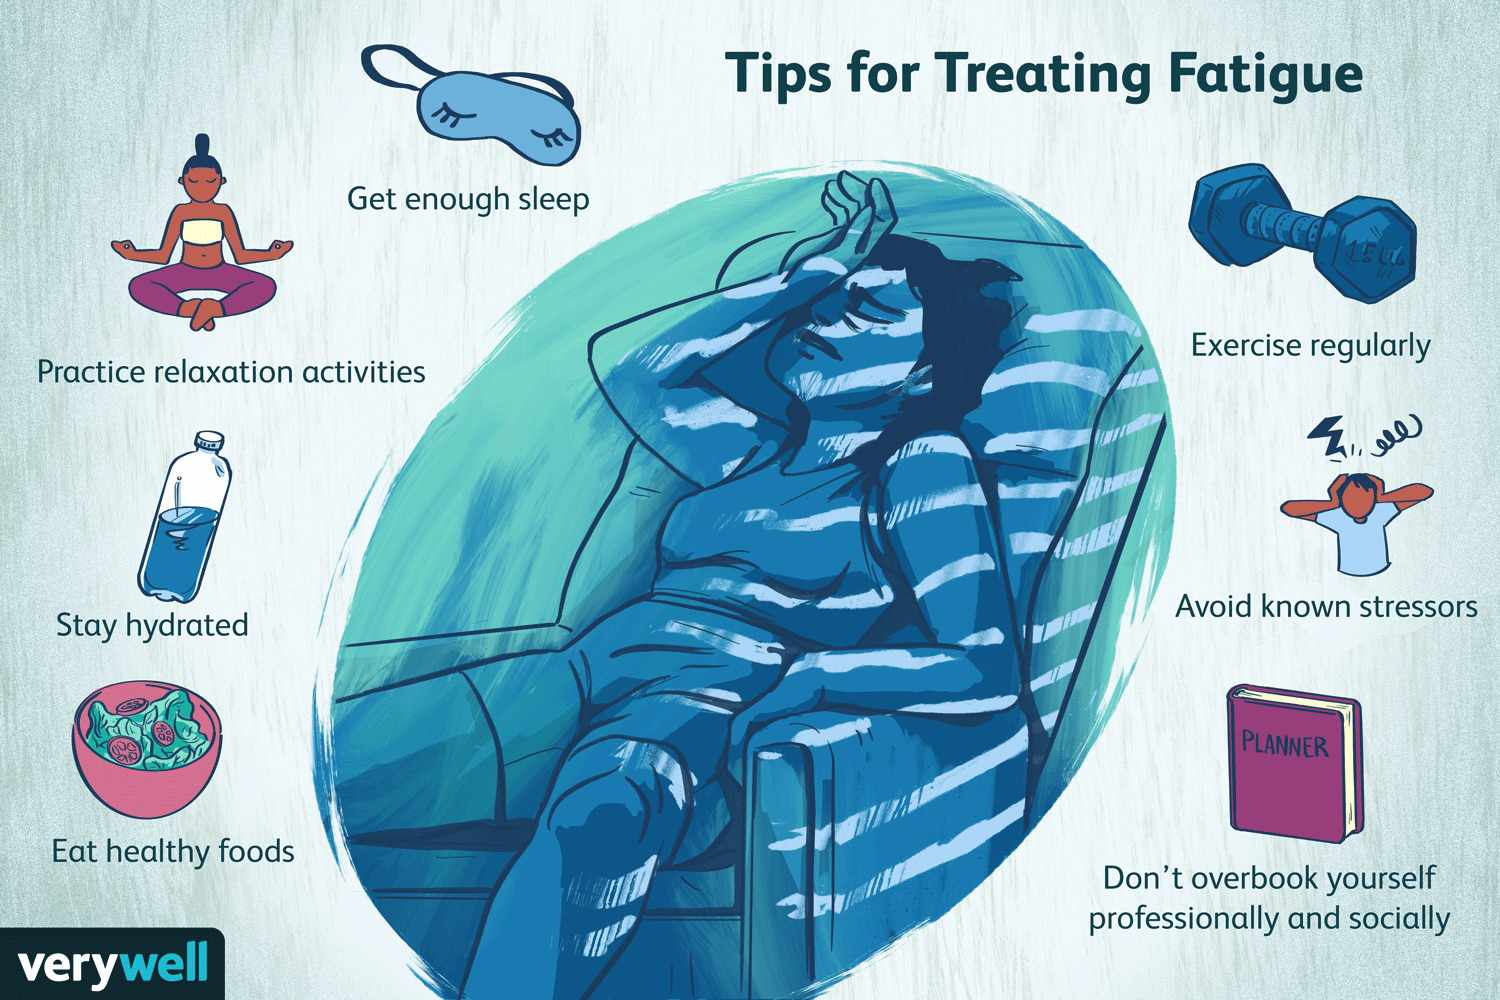 tips for treating fatigue